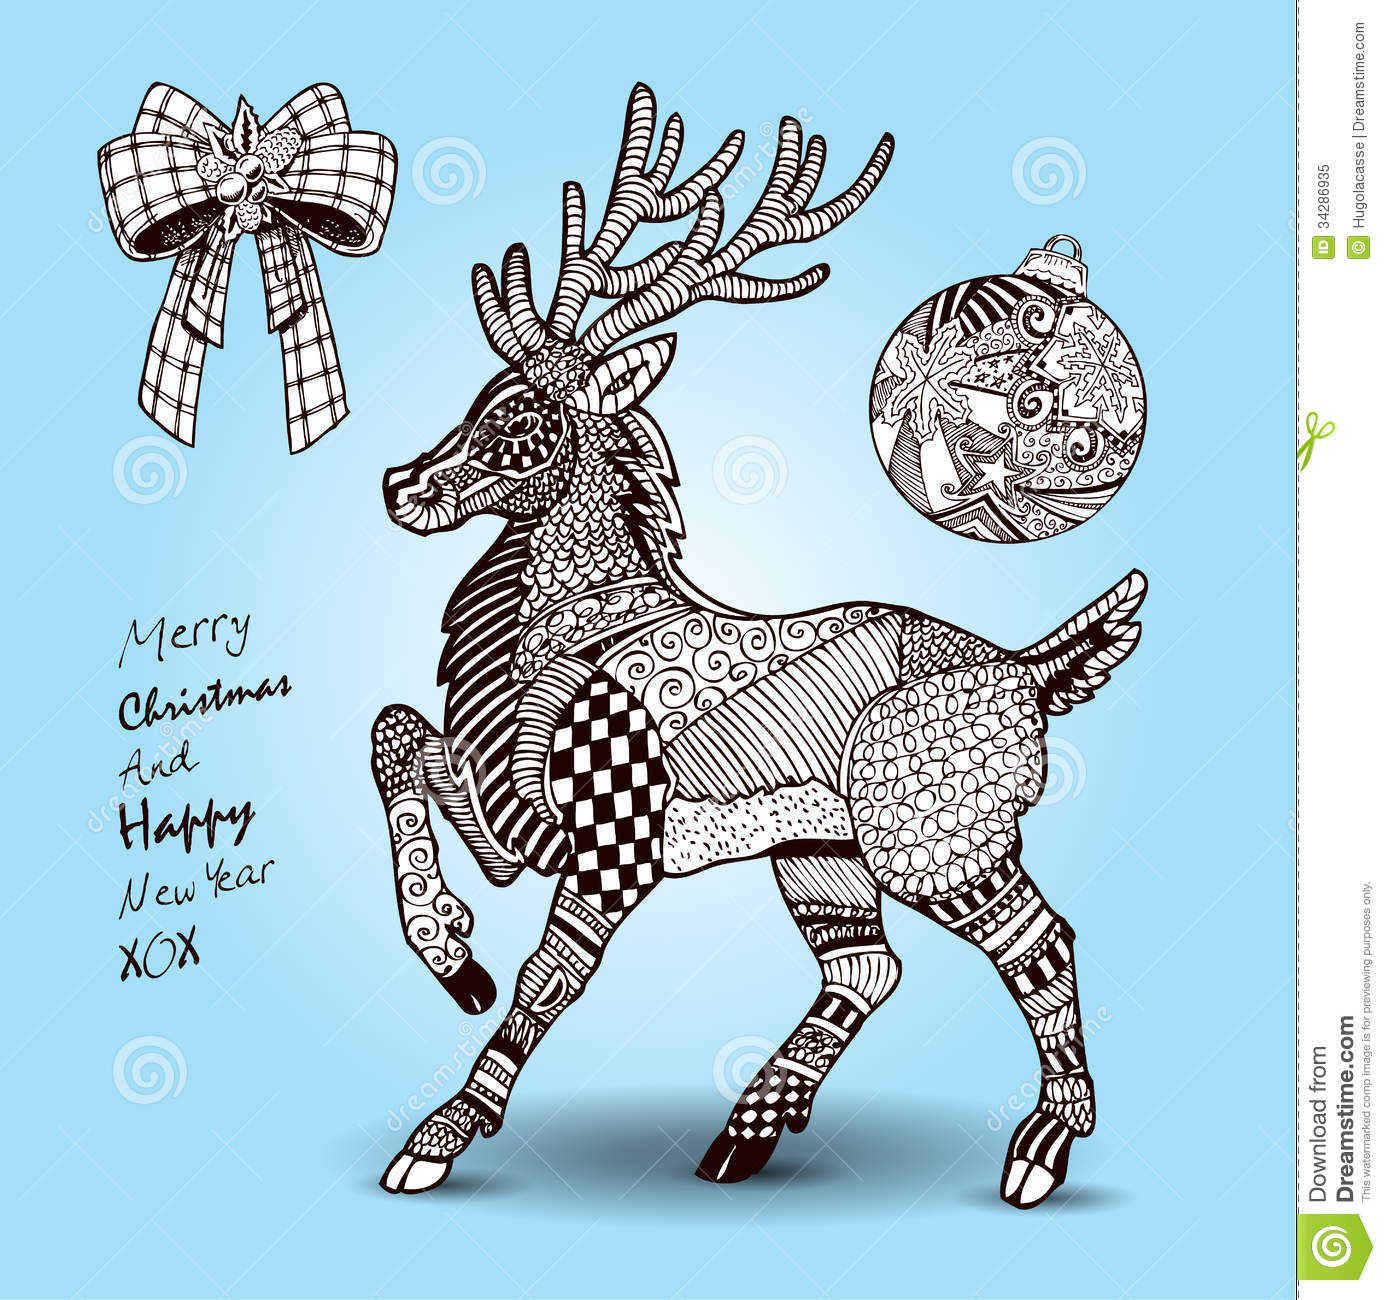 Hand Drawn Christmas Reindeer And Decorations Set Royalty Free Stock ...